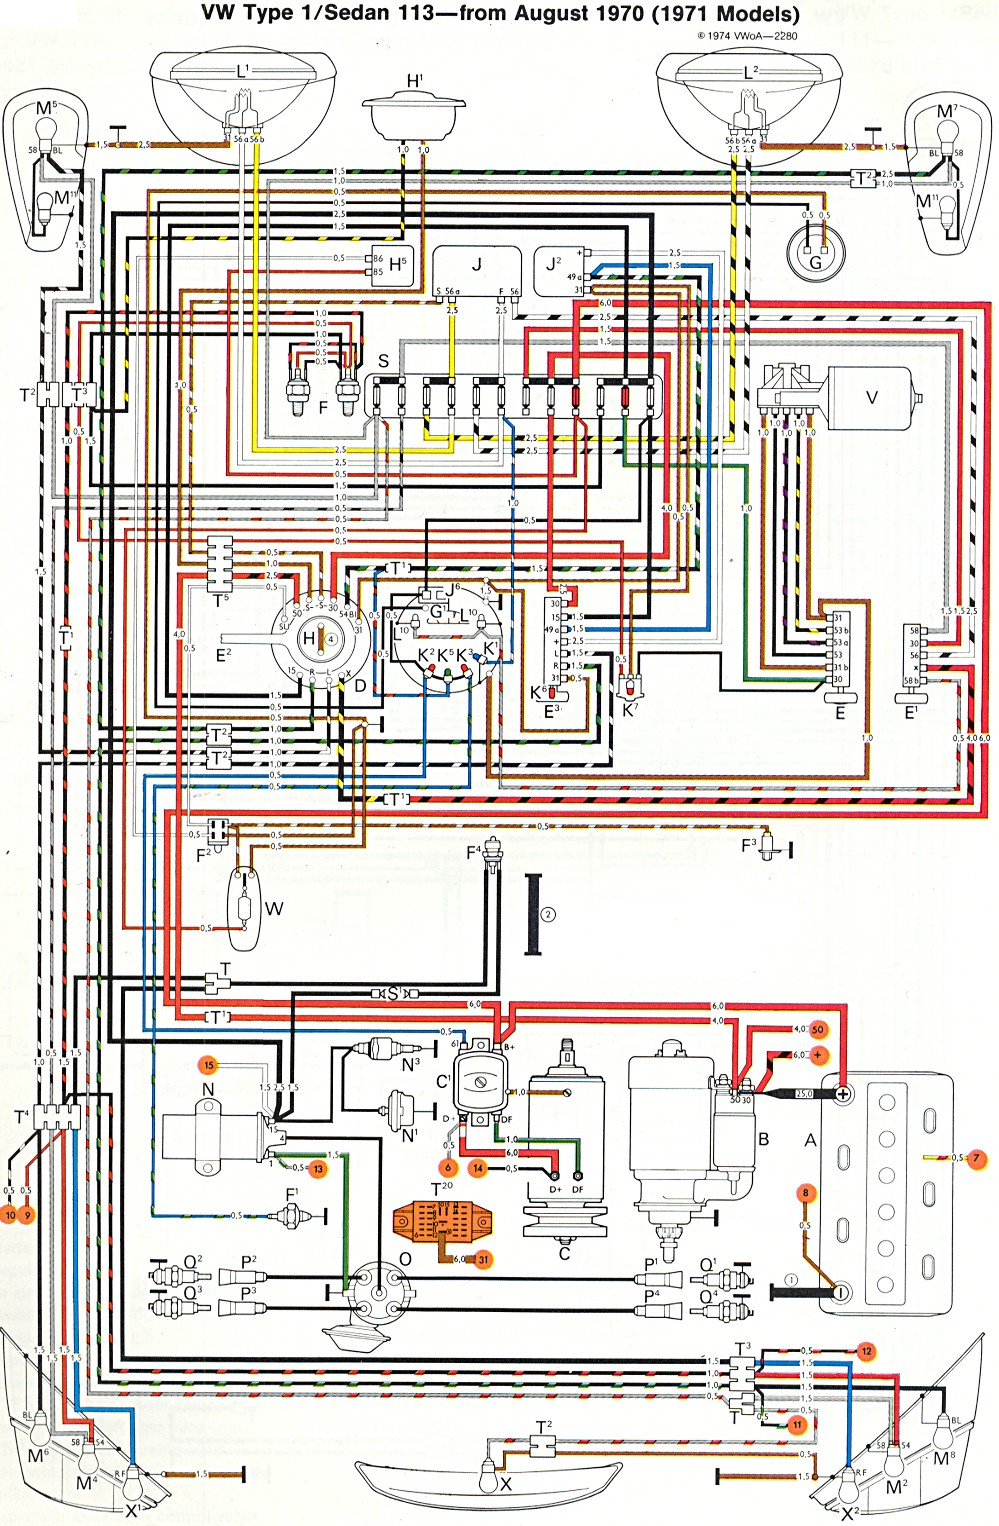 hight resolution of wiring diagram for 1974 vw super beetle wiring diagram expert 1974 vw beetle alternator wiring diagram 74 vw beetle wiring